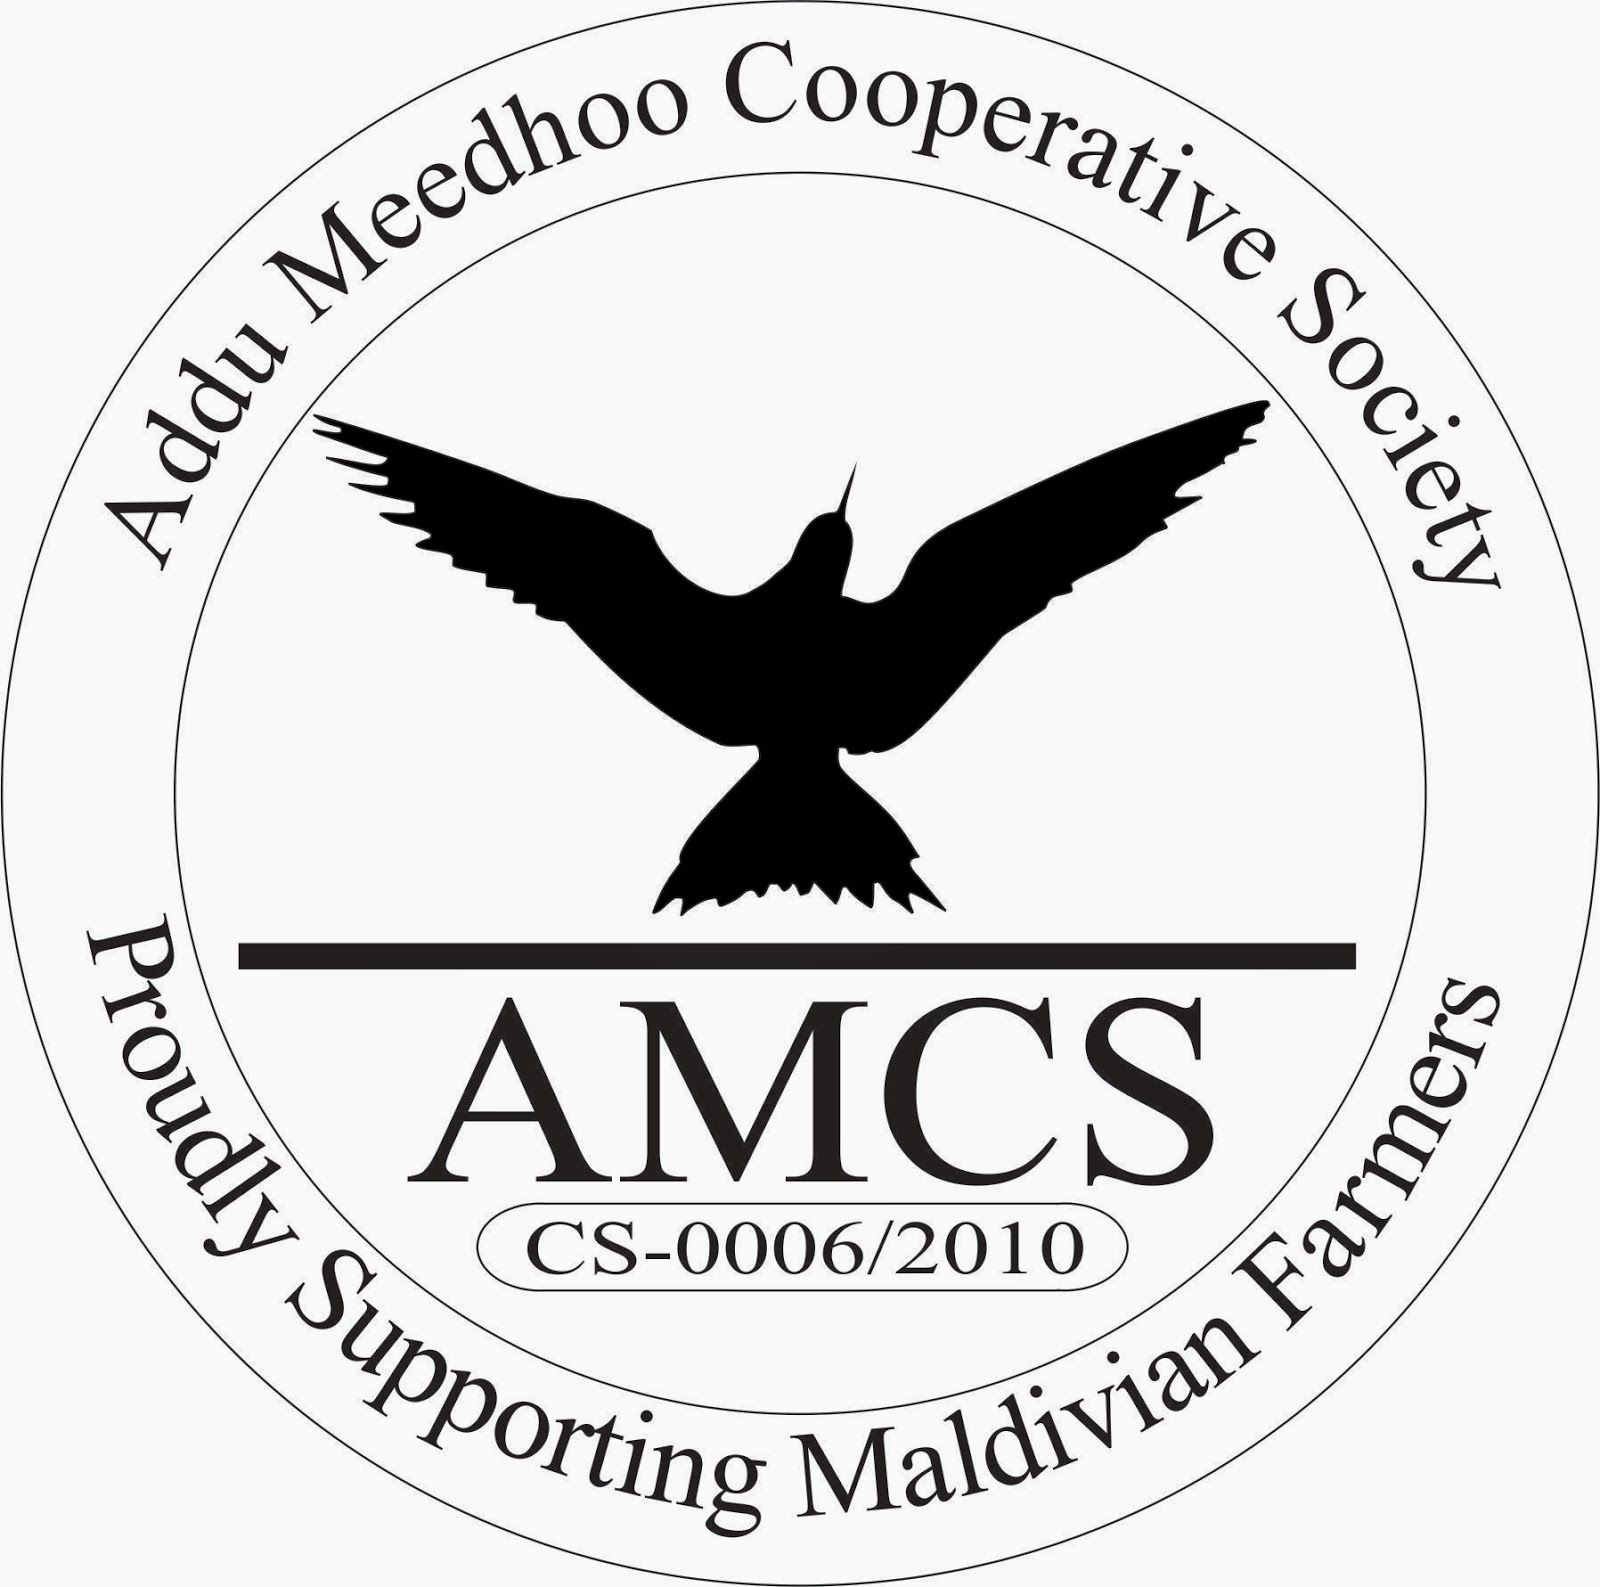 job maldives february 2014 Executive Assistant Resume Objective addu meedhoo cooperative society